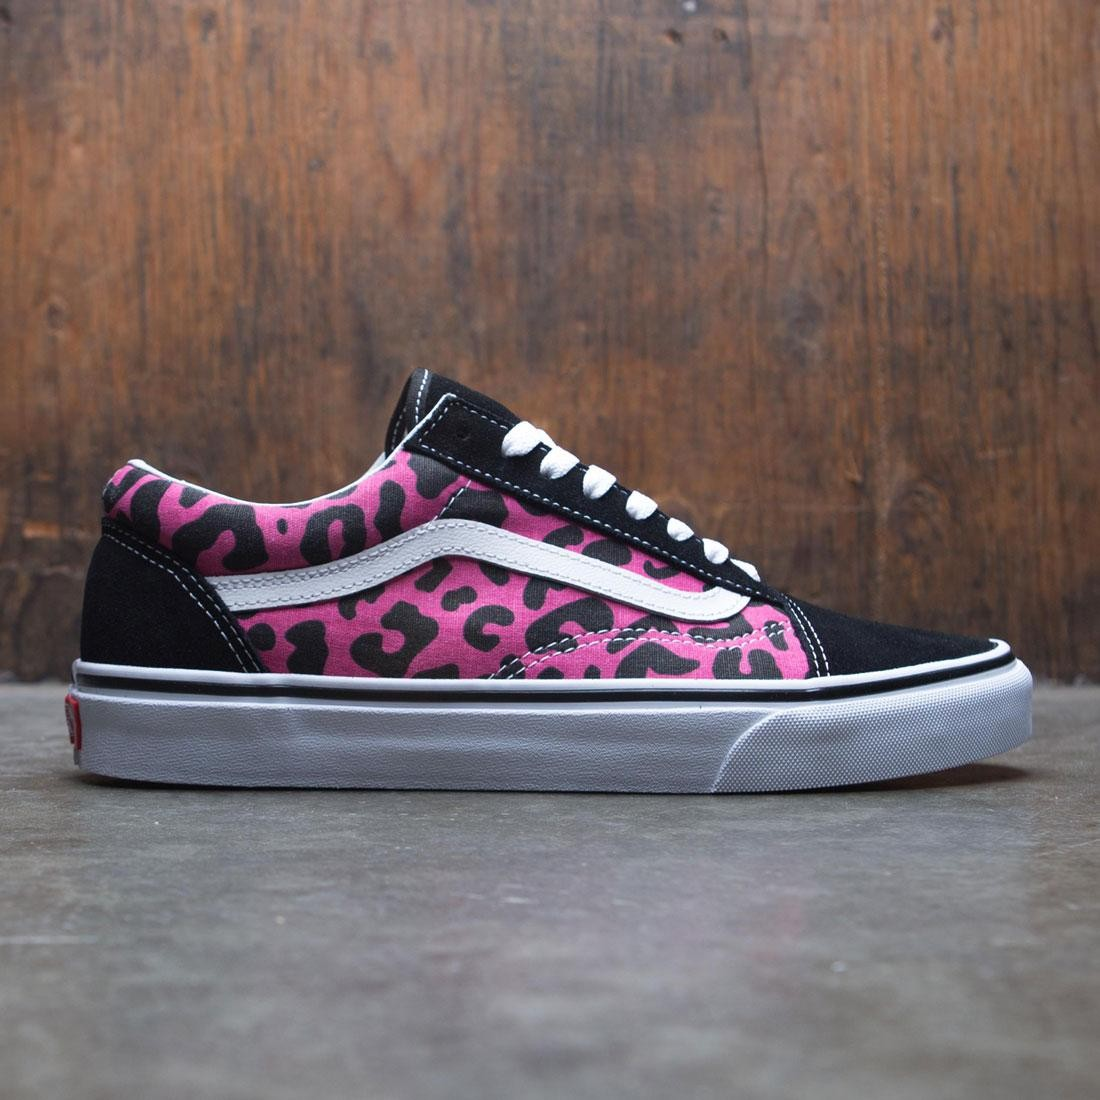 510080ac1d21 Vans Men Old Skool - Leopard pink